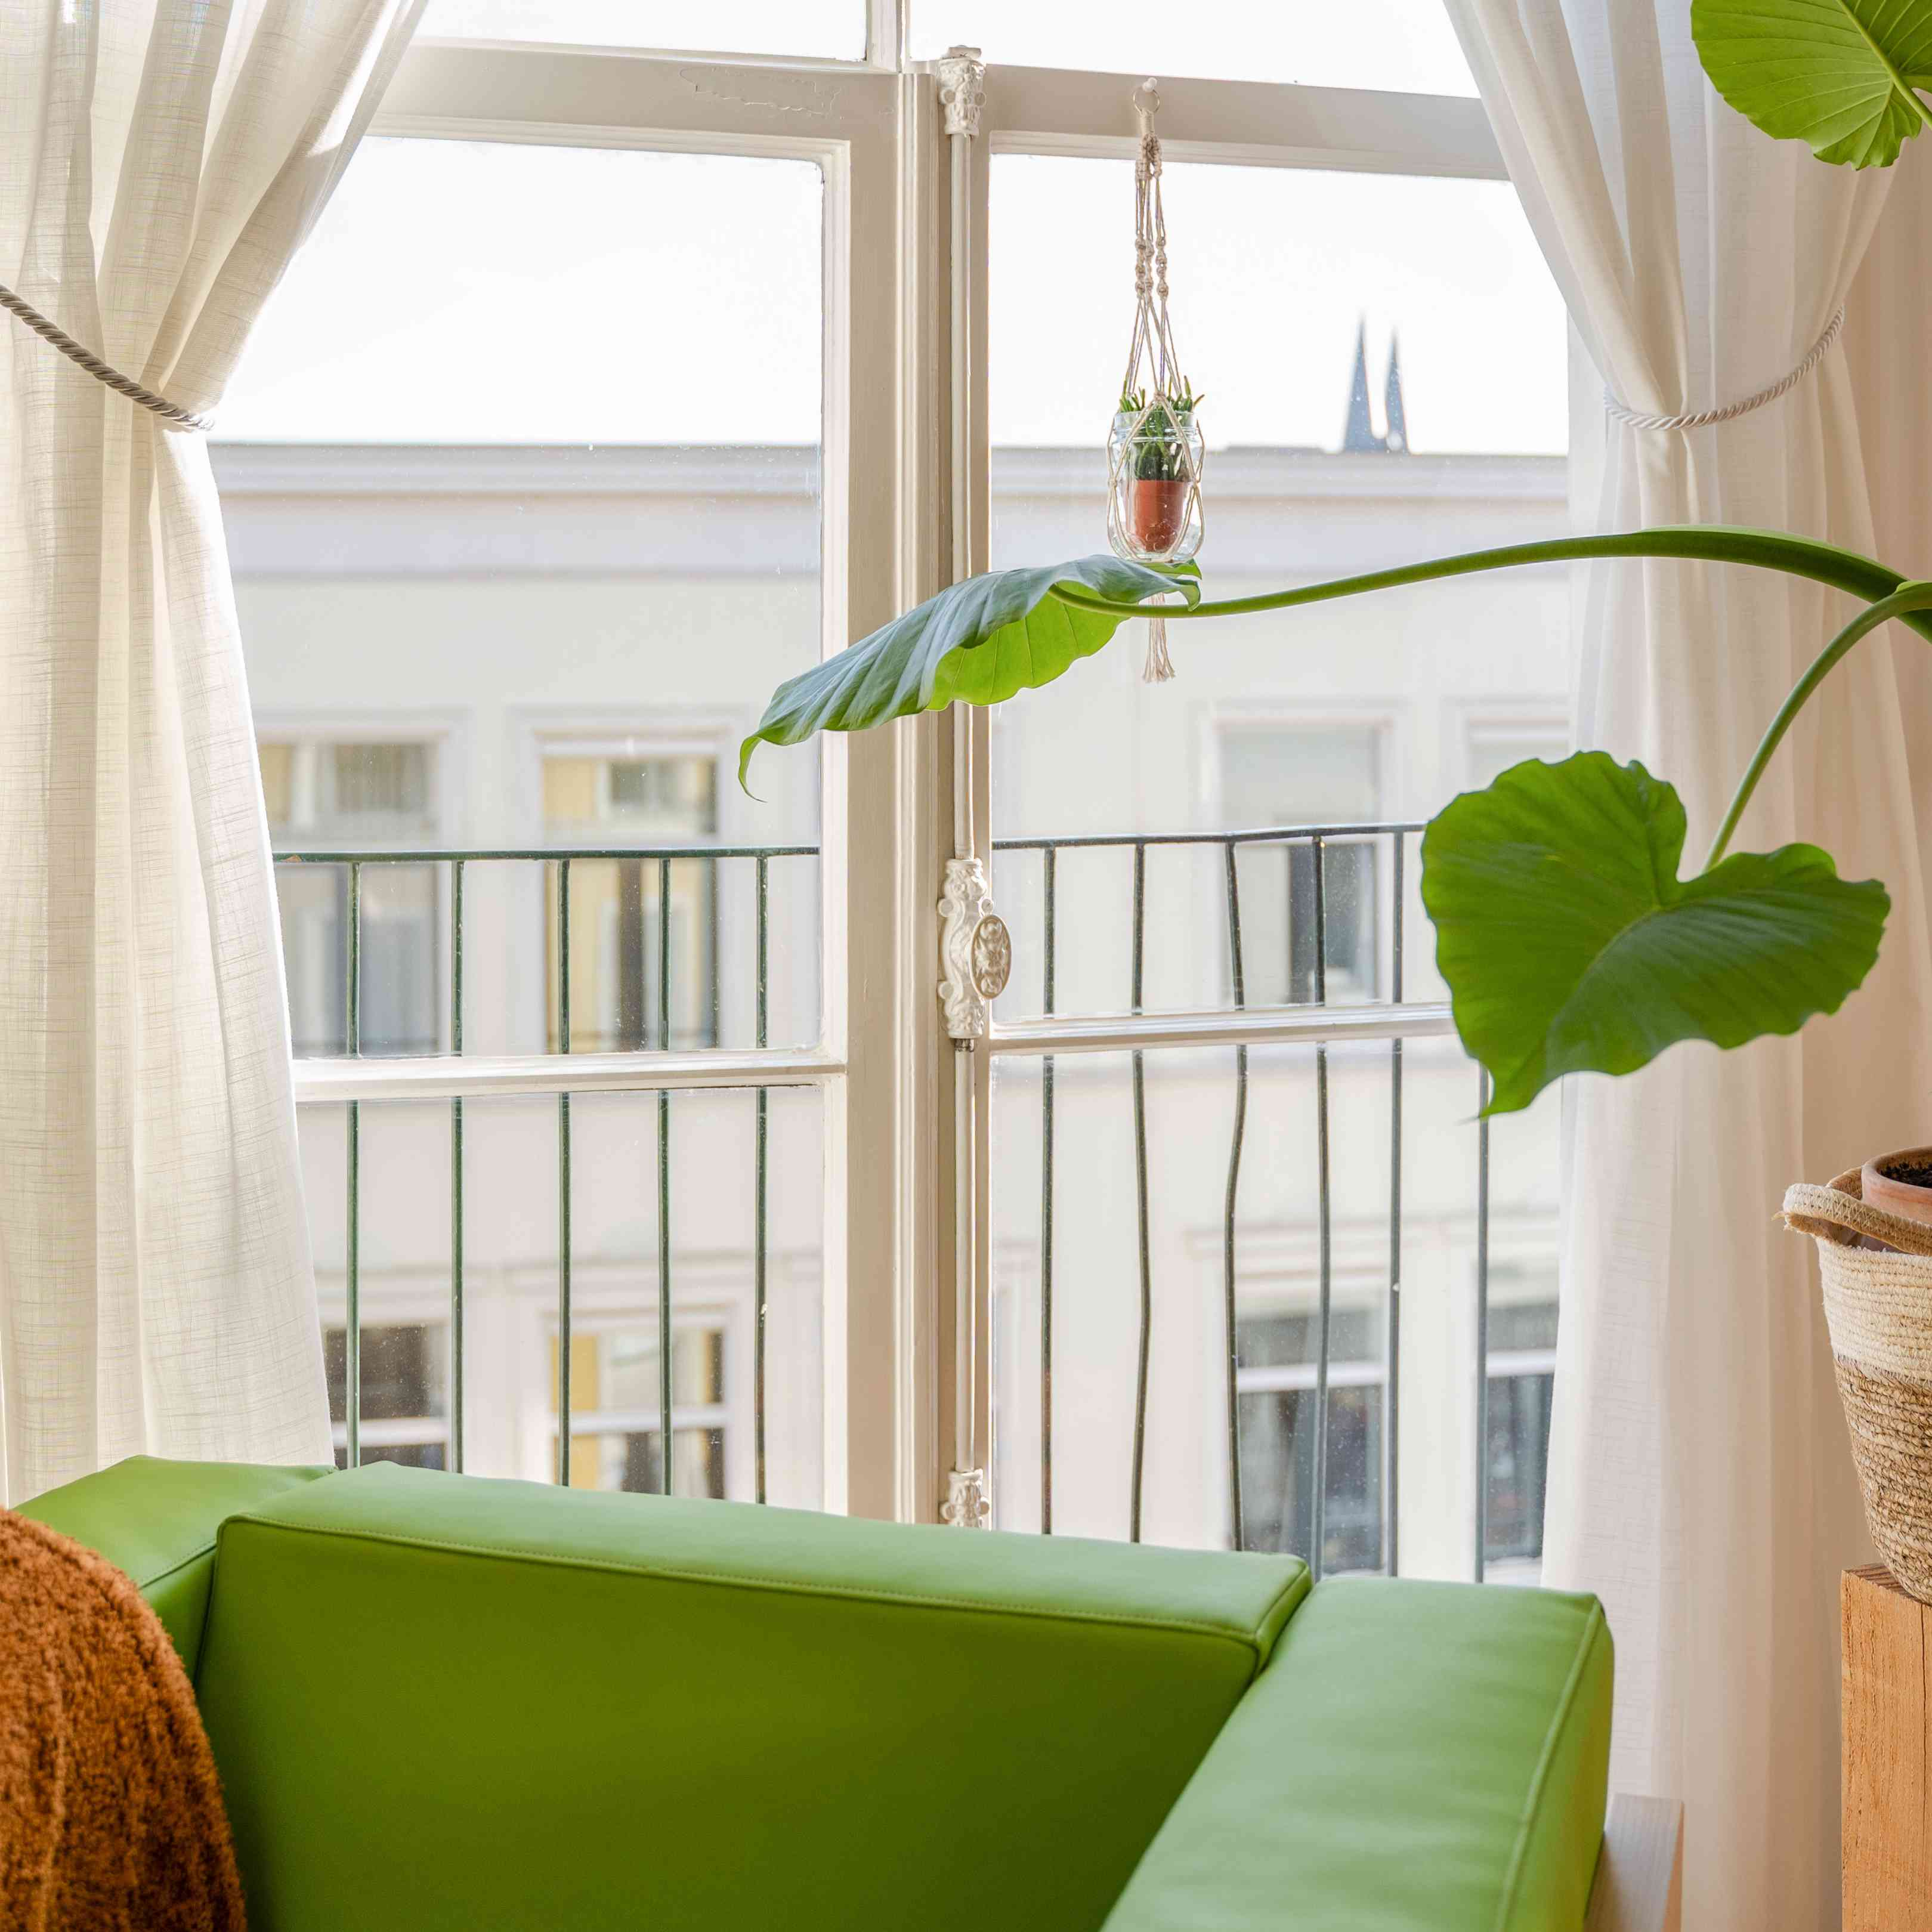 green armchair and green plant next to a window with white drapes